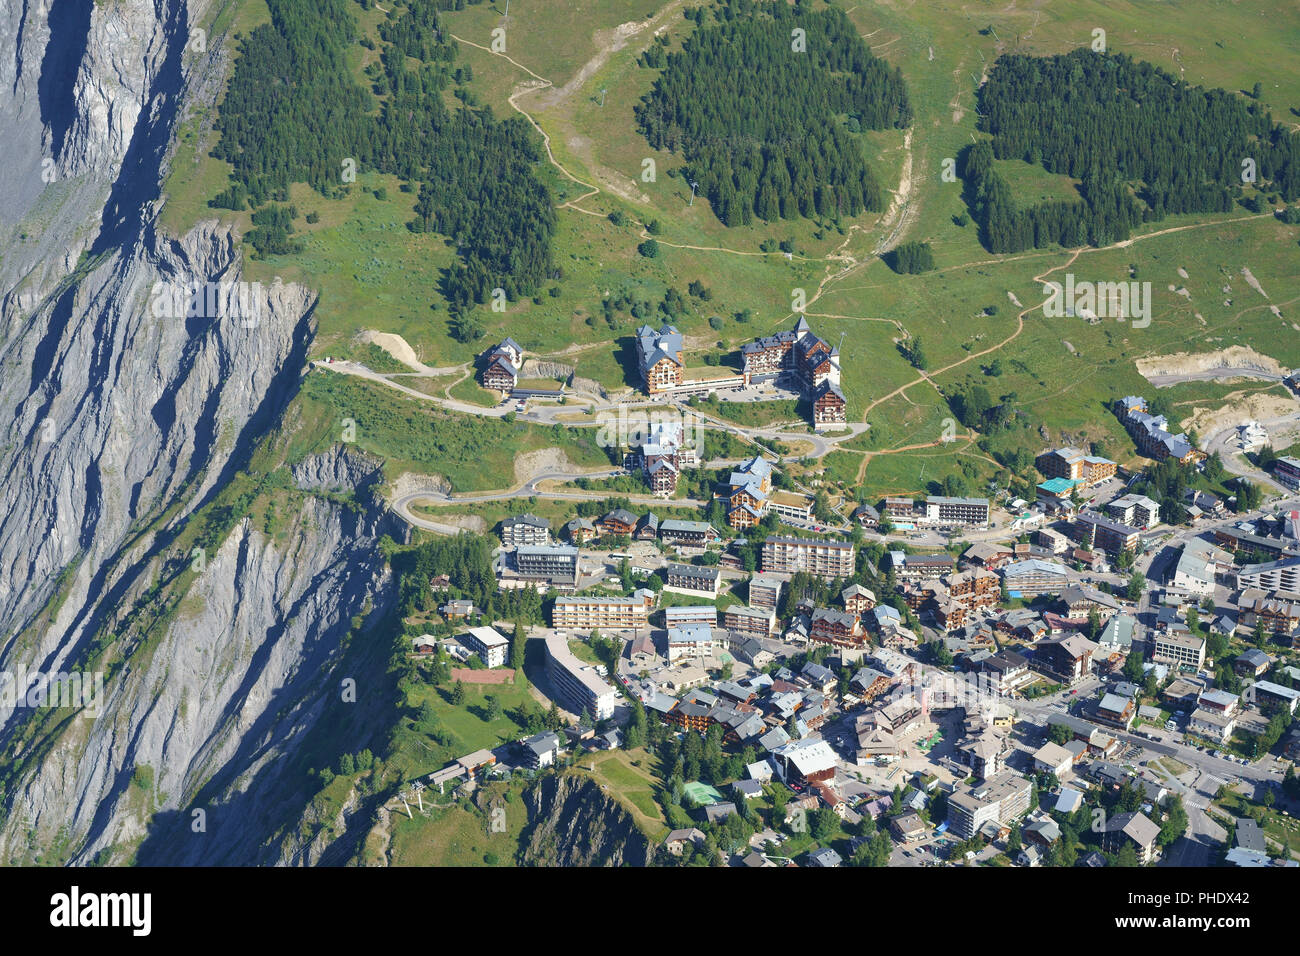 TOO CLOSE FOR COMFORT HEADWARD EROSON AT THE CITY'S LIMIT (aerial view). Ski resort of Les 2 Alpes in summer, France. - Stock Image